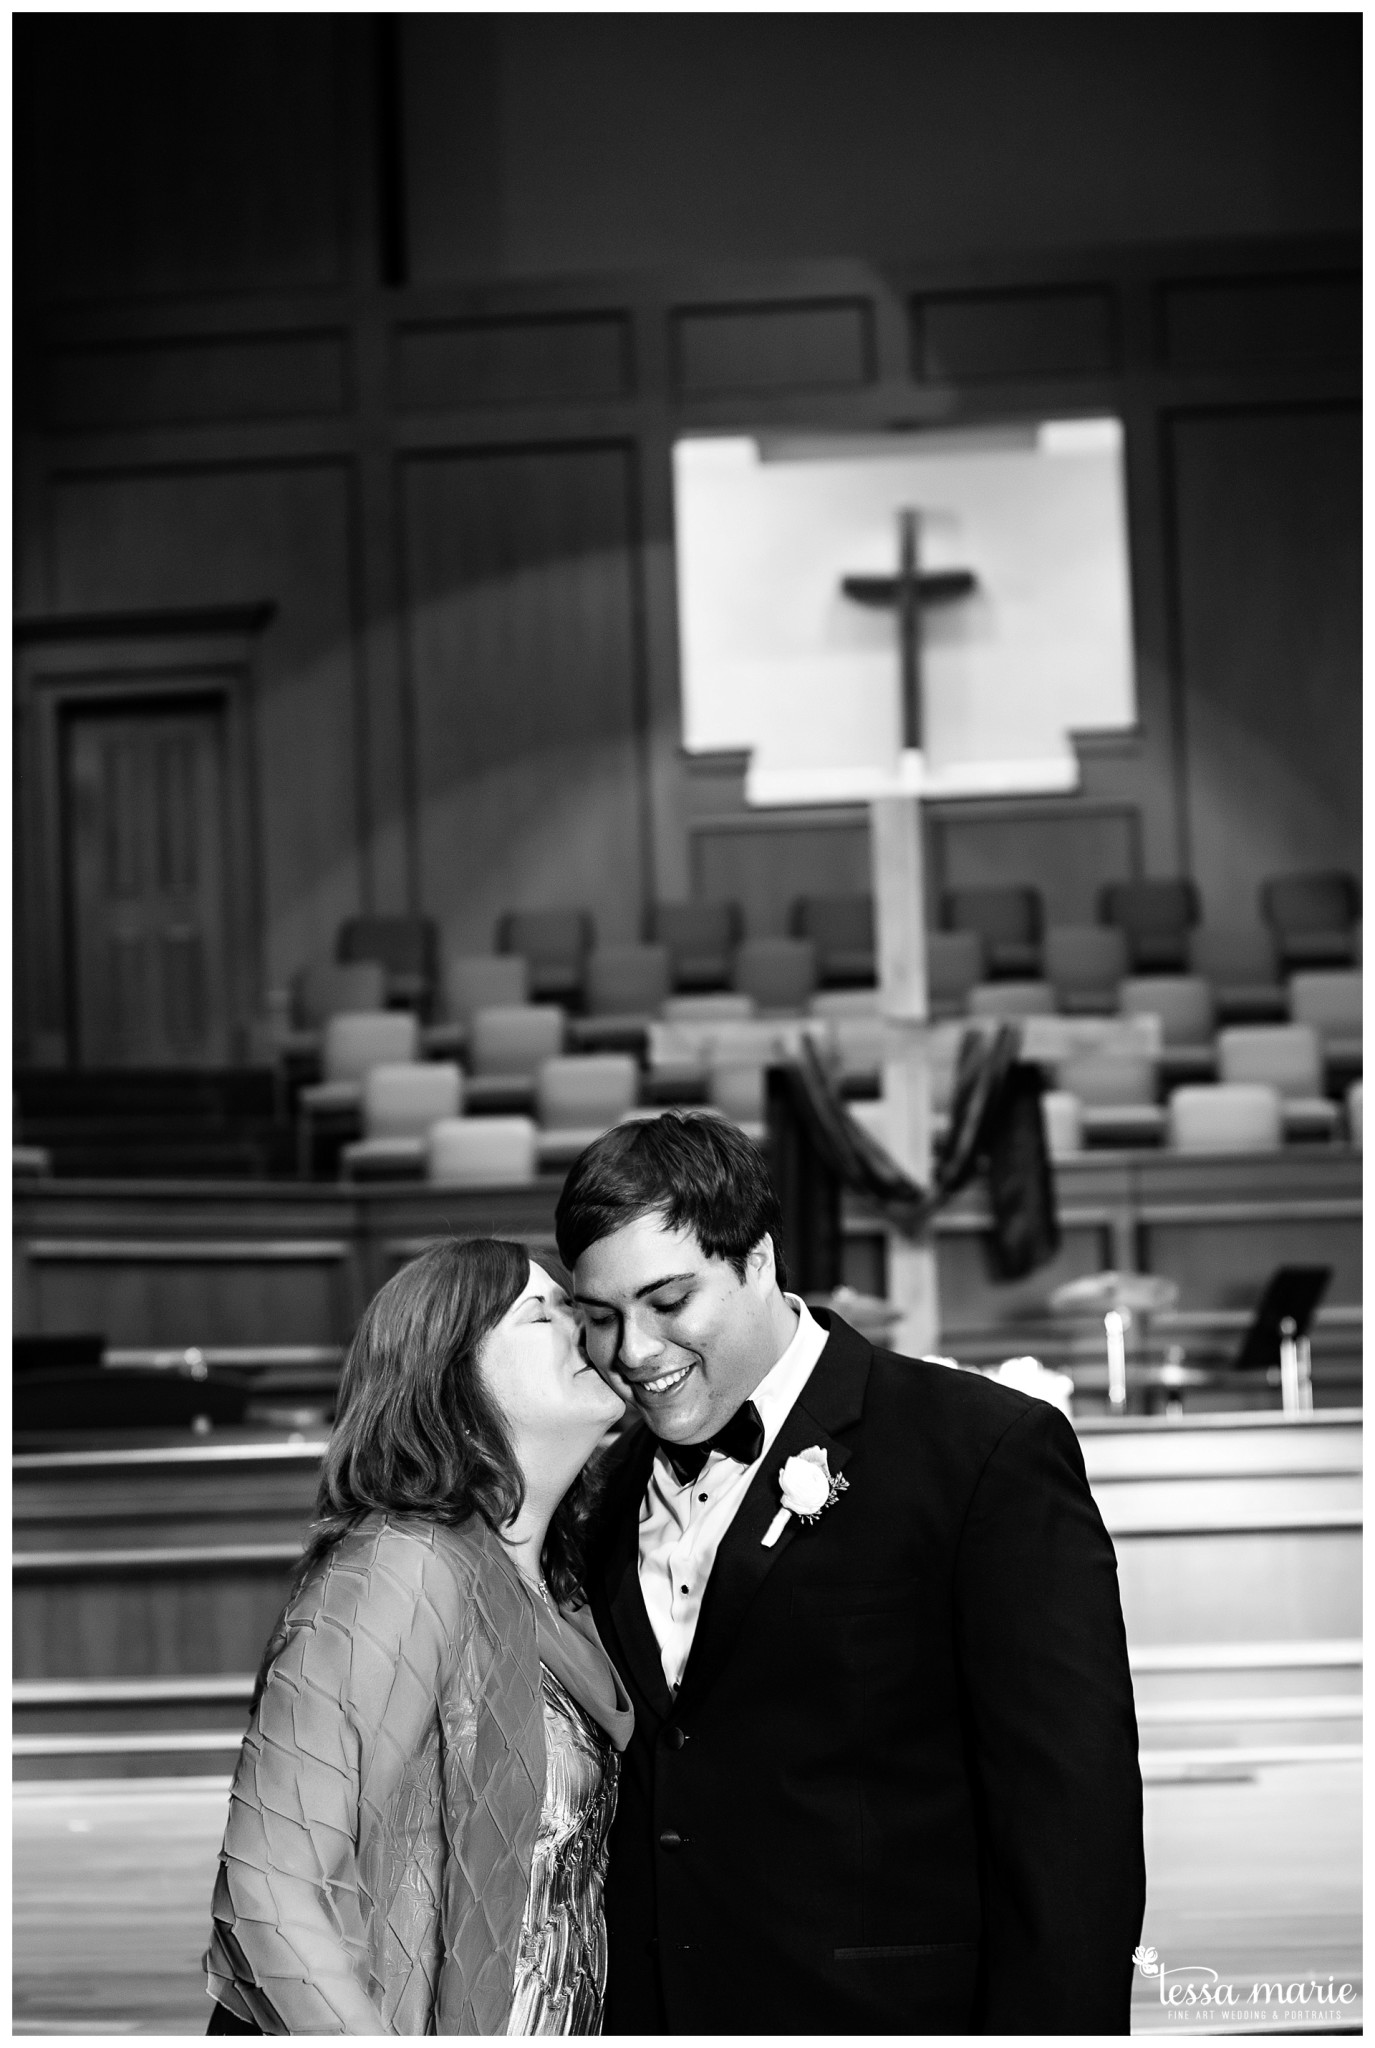 tessa_marie_weddings_legacy_story_focused_wedding_pictures_atlanta_wedding_photographer_0132